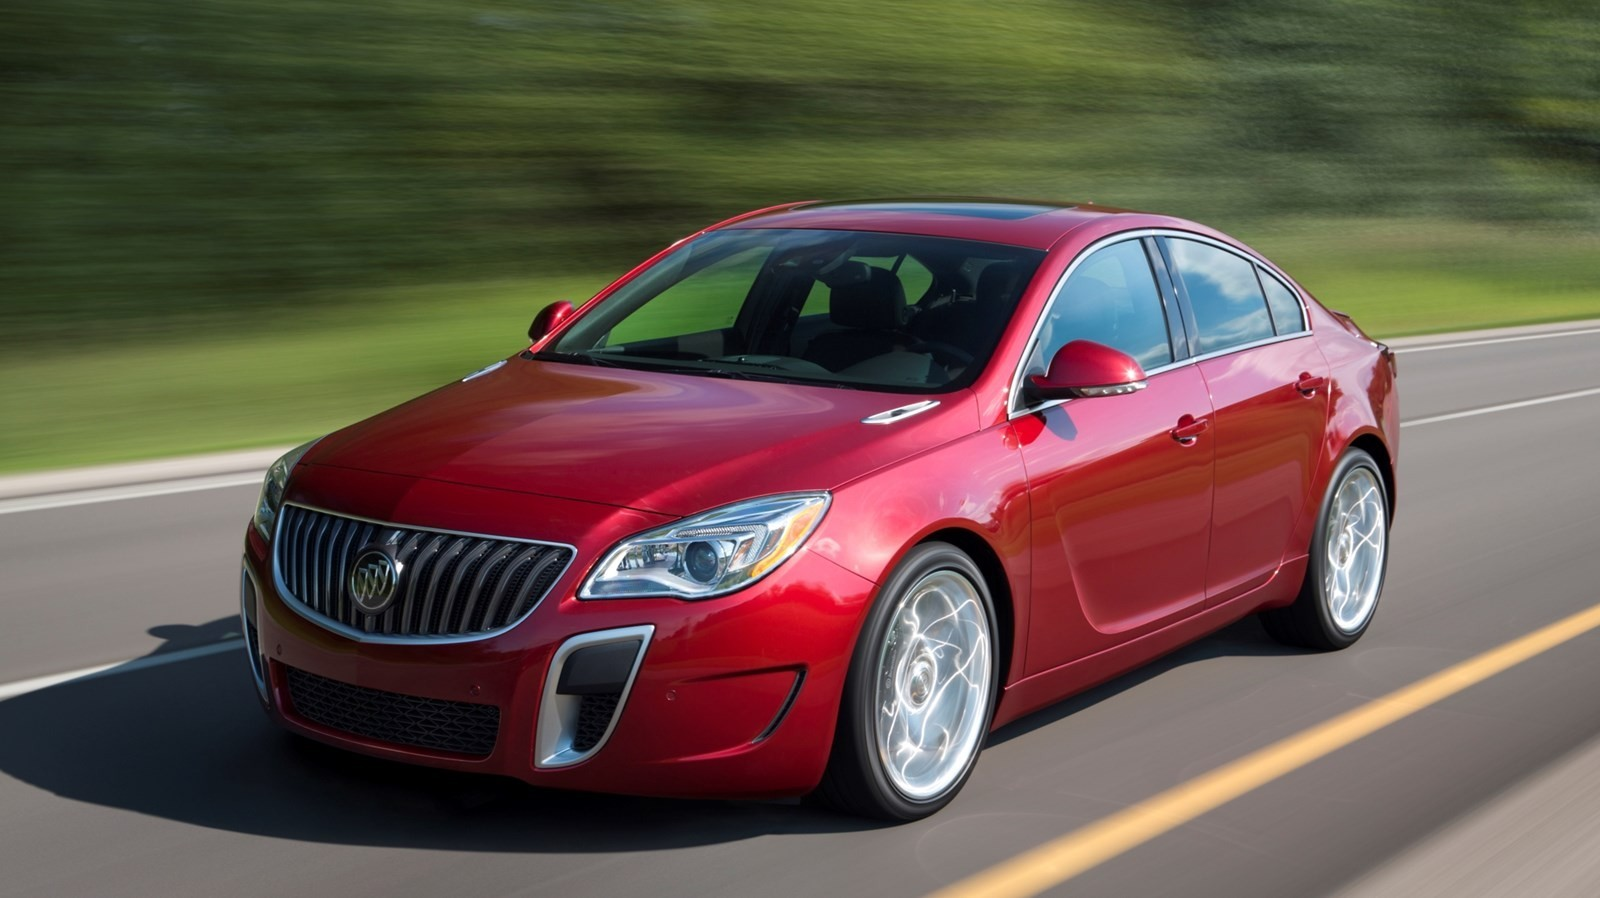 2015 buick regal gs awd. Cars Review. Best American Auto & Cars Review